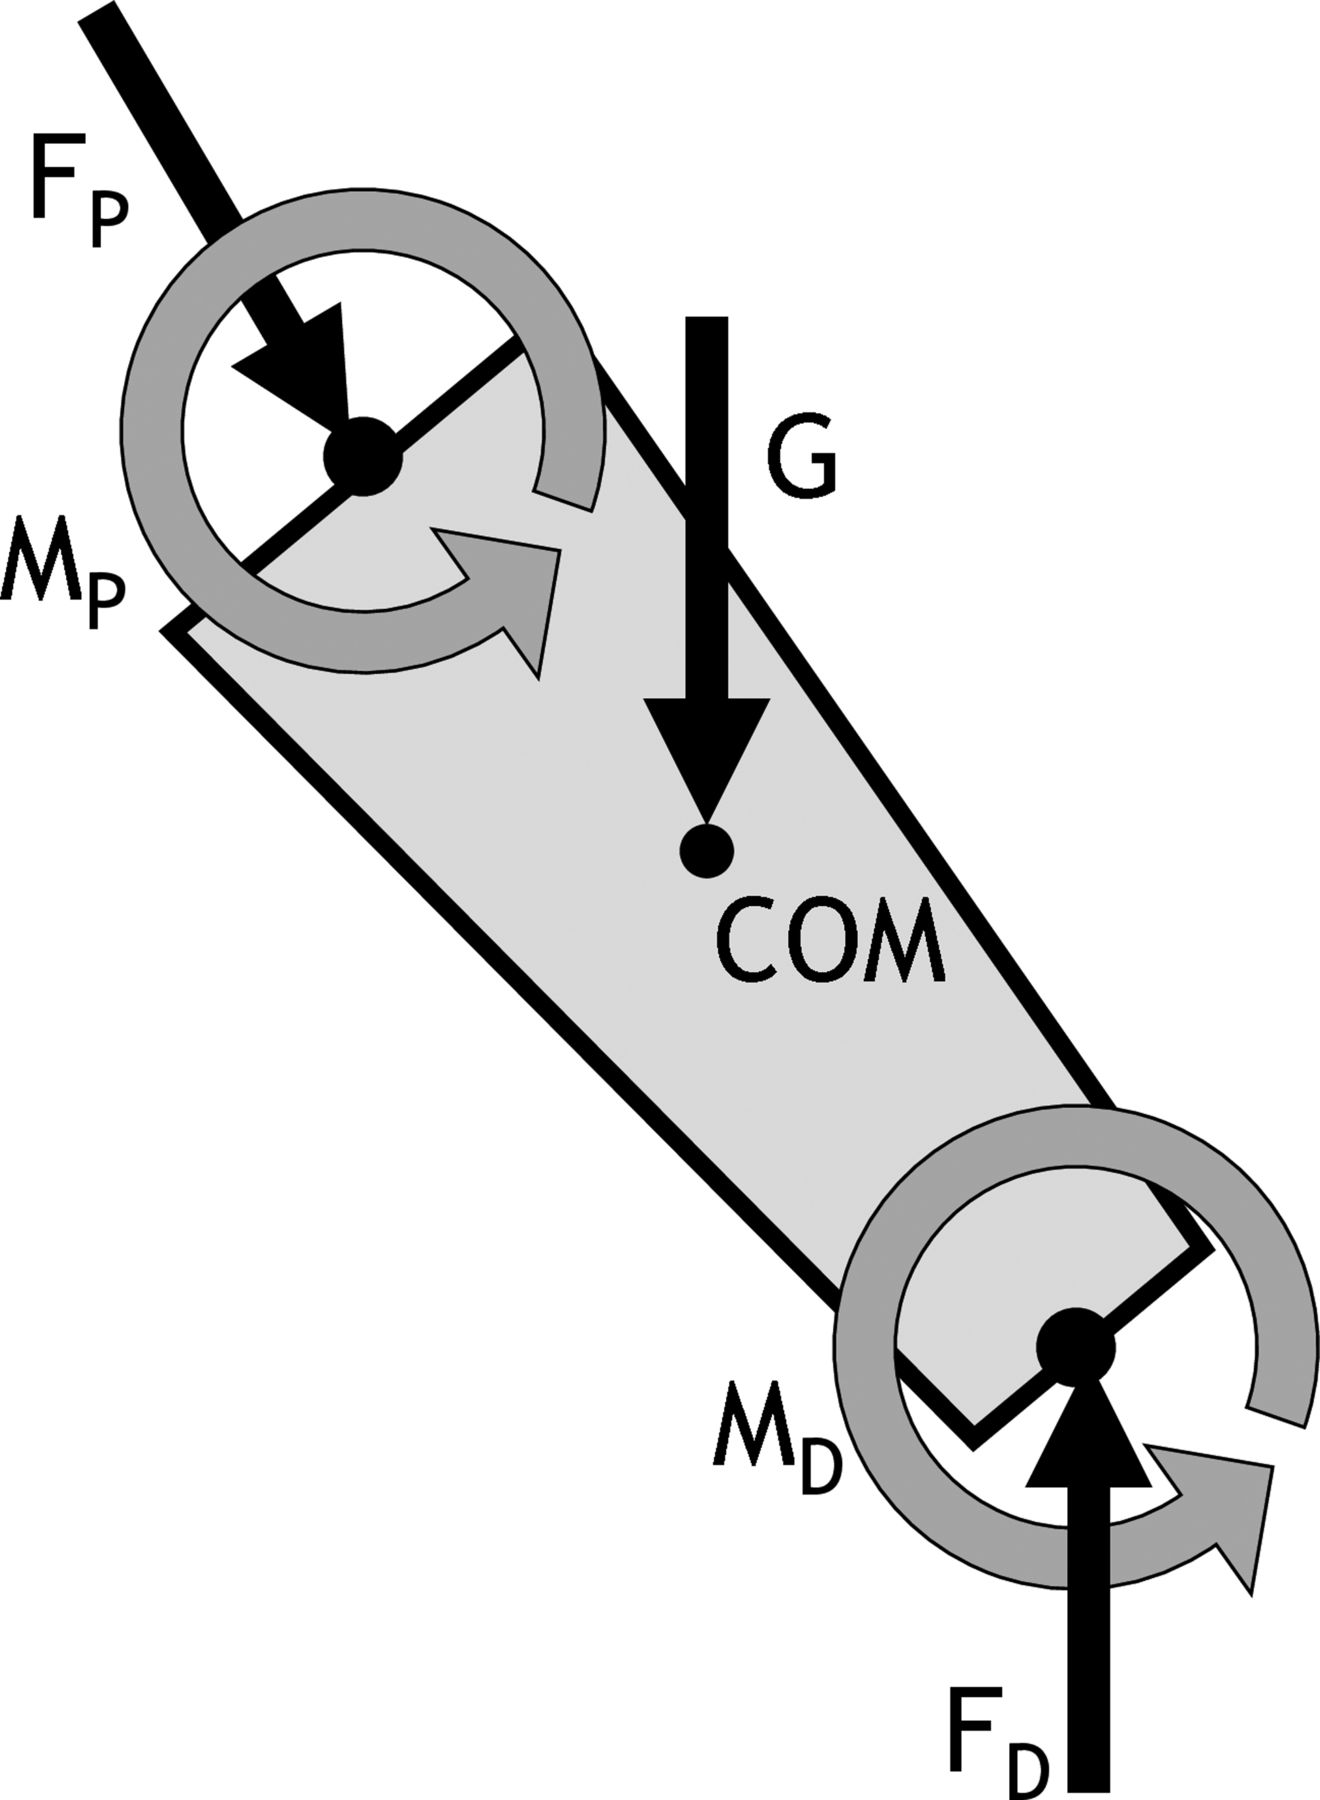 Artefacts In Measuring Joint Moments May Lead To Incorrect Clinical Freebody Diagrams Be Of Body Segments Involved This Movement Download Figure Open New Tab Powerpoint 1 A Free Diagram Segment